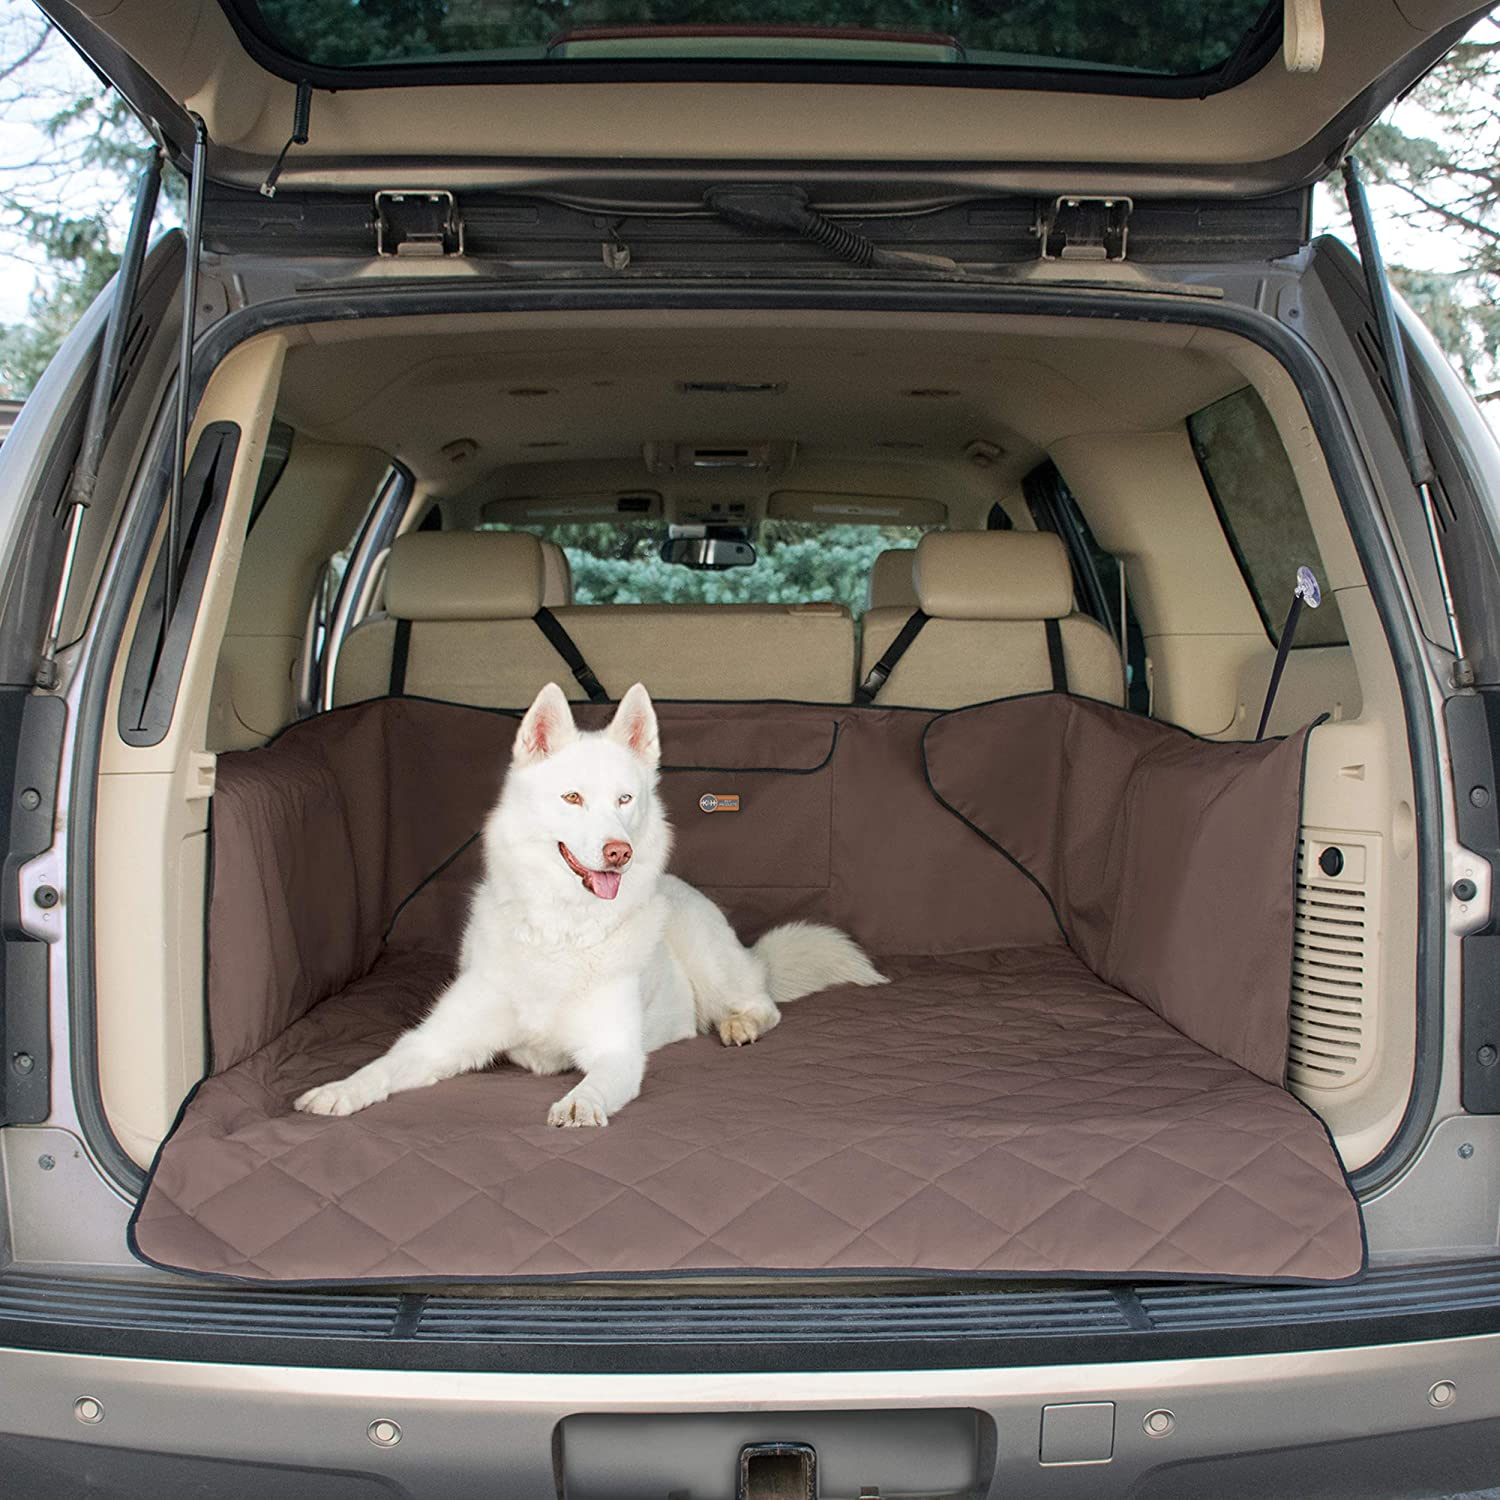 K&H Pet Products Quilted Cargo Cover Tan (Full Size) Predects Cargo Area of Your Vehicle from Pet Hair, Dirt, Scratches and More